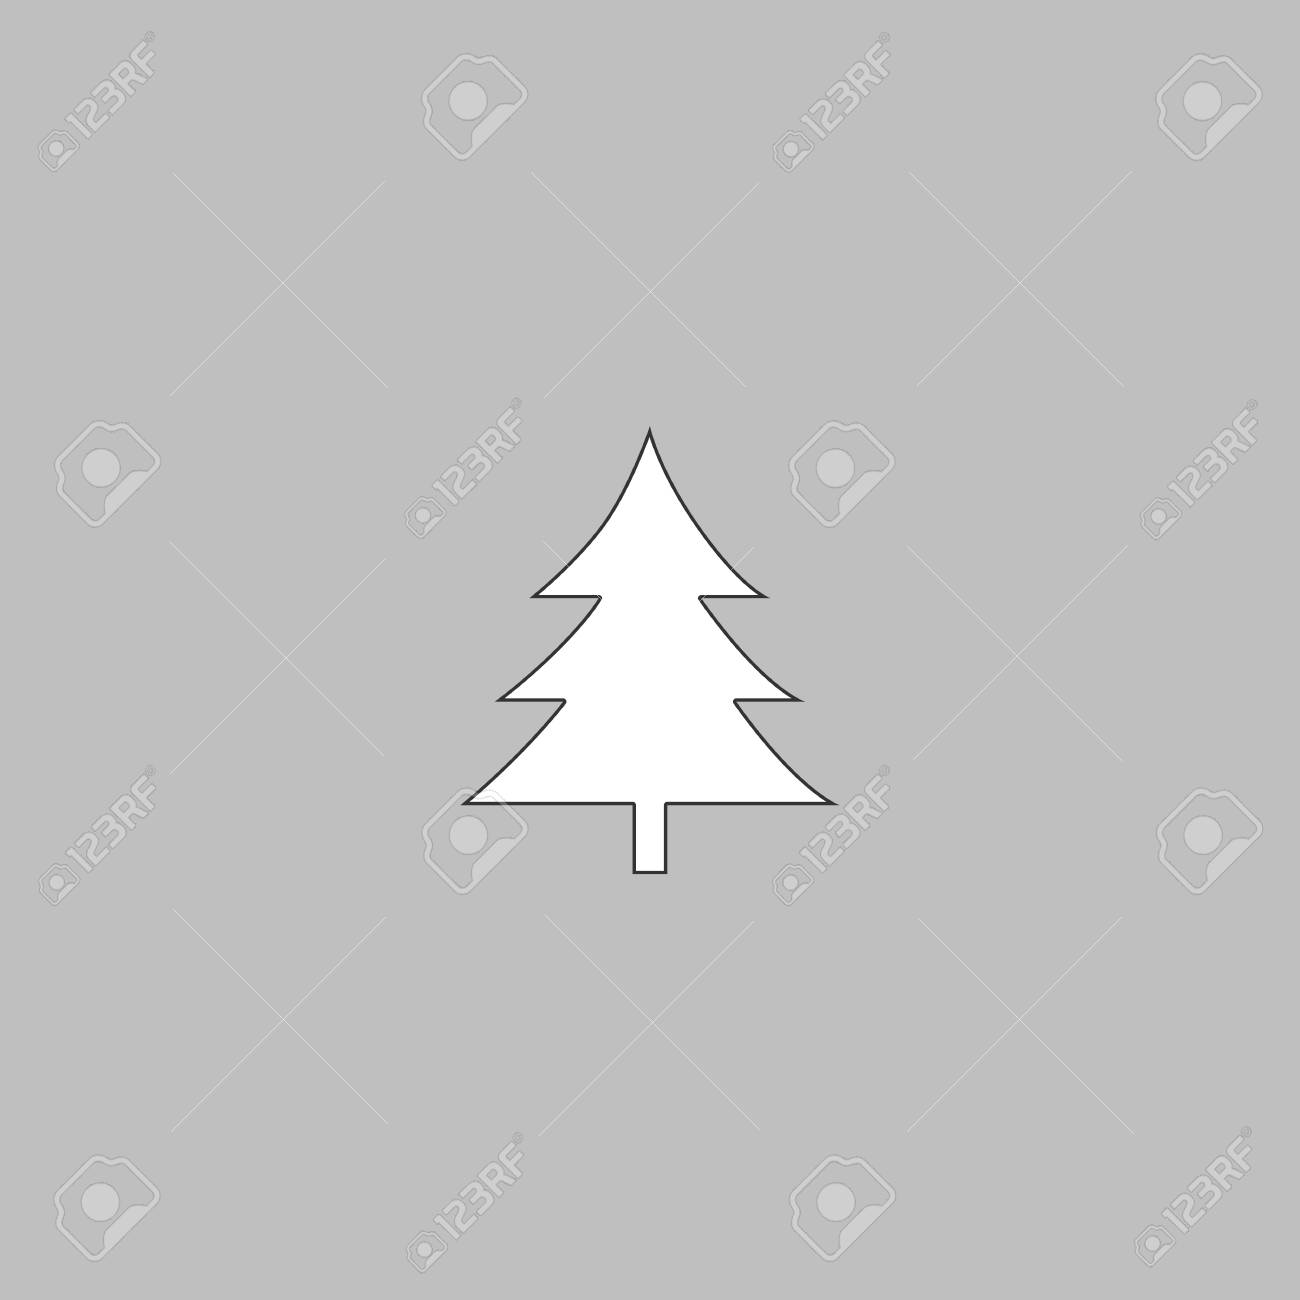 Christmas Tree Simple Line Vector Button Thin Illustration Icon White Outline Symbol On